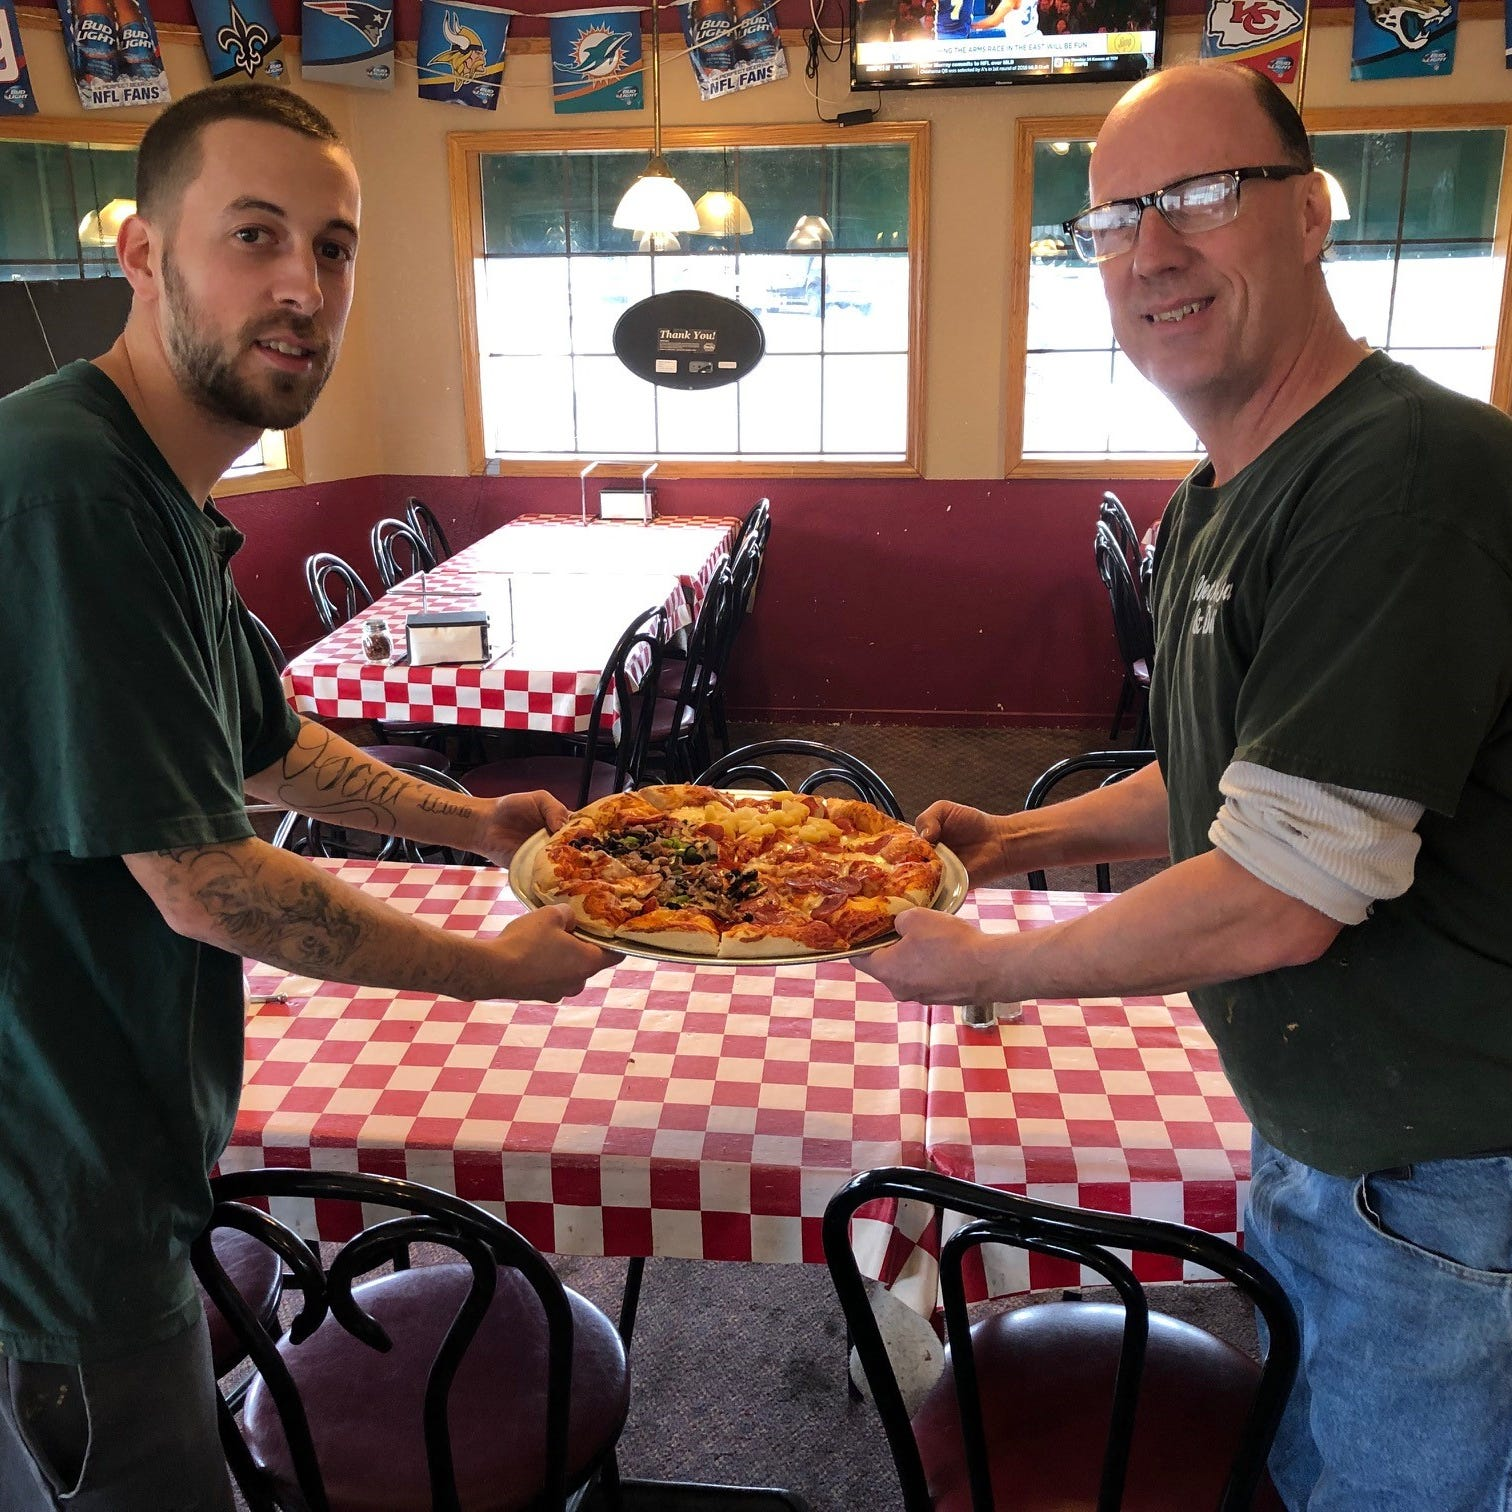 Dining out: Market Street Pizza home to one of the best lunch deals in town